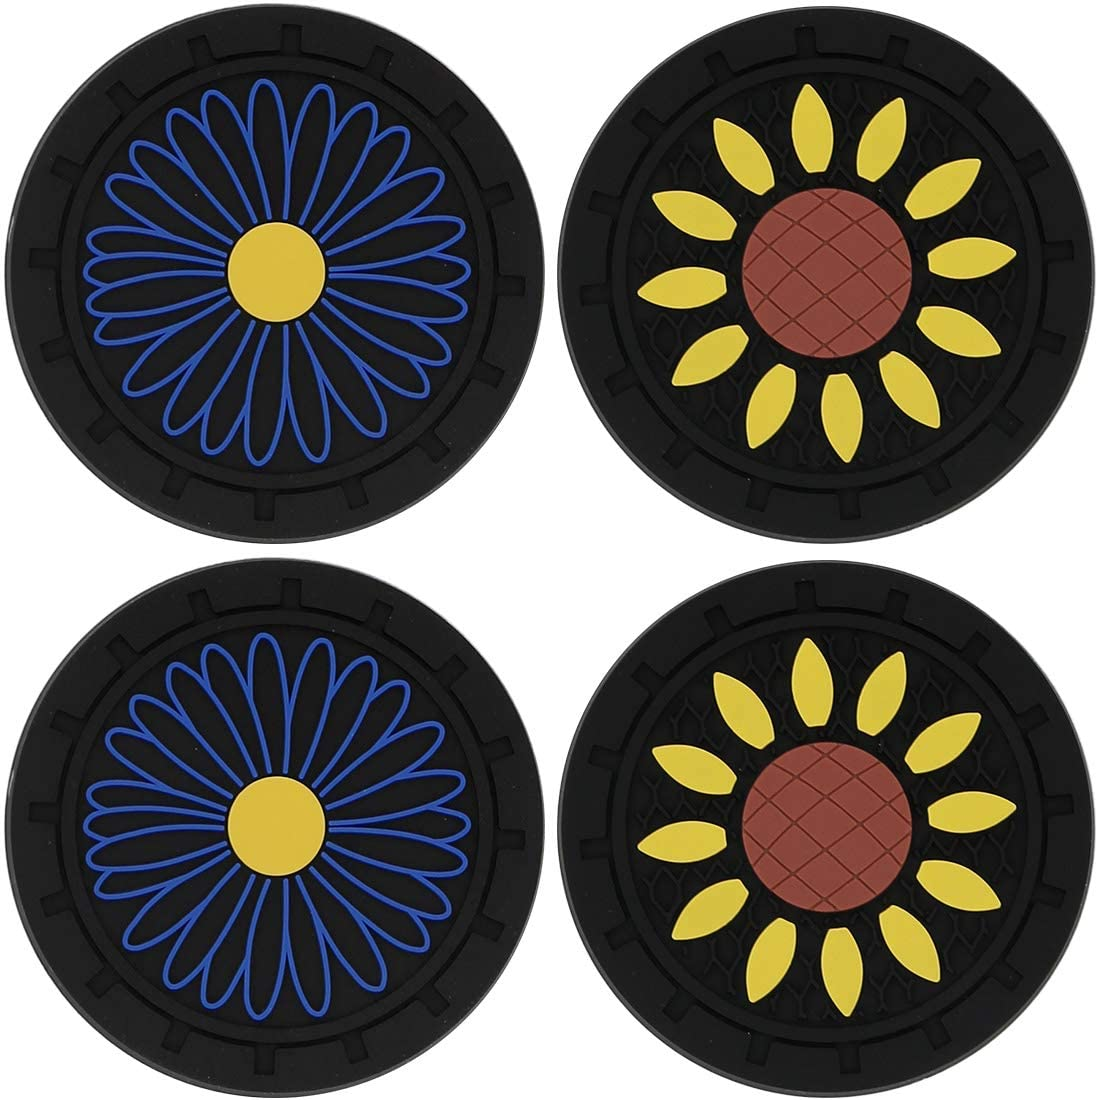 Youteer Car Cup Holder Insert Coasters Silicone Anti Slip Mat Accessories for Jeeps Cars Trucks RVs and More 4 Packs 2.75 inch Sunflower & Blue Cornflower